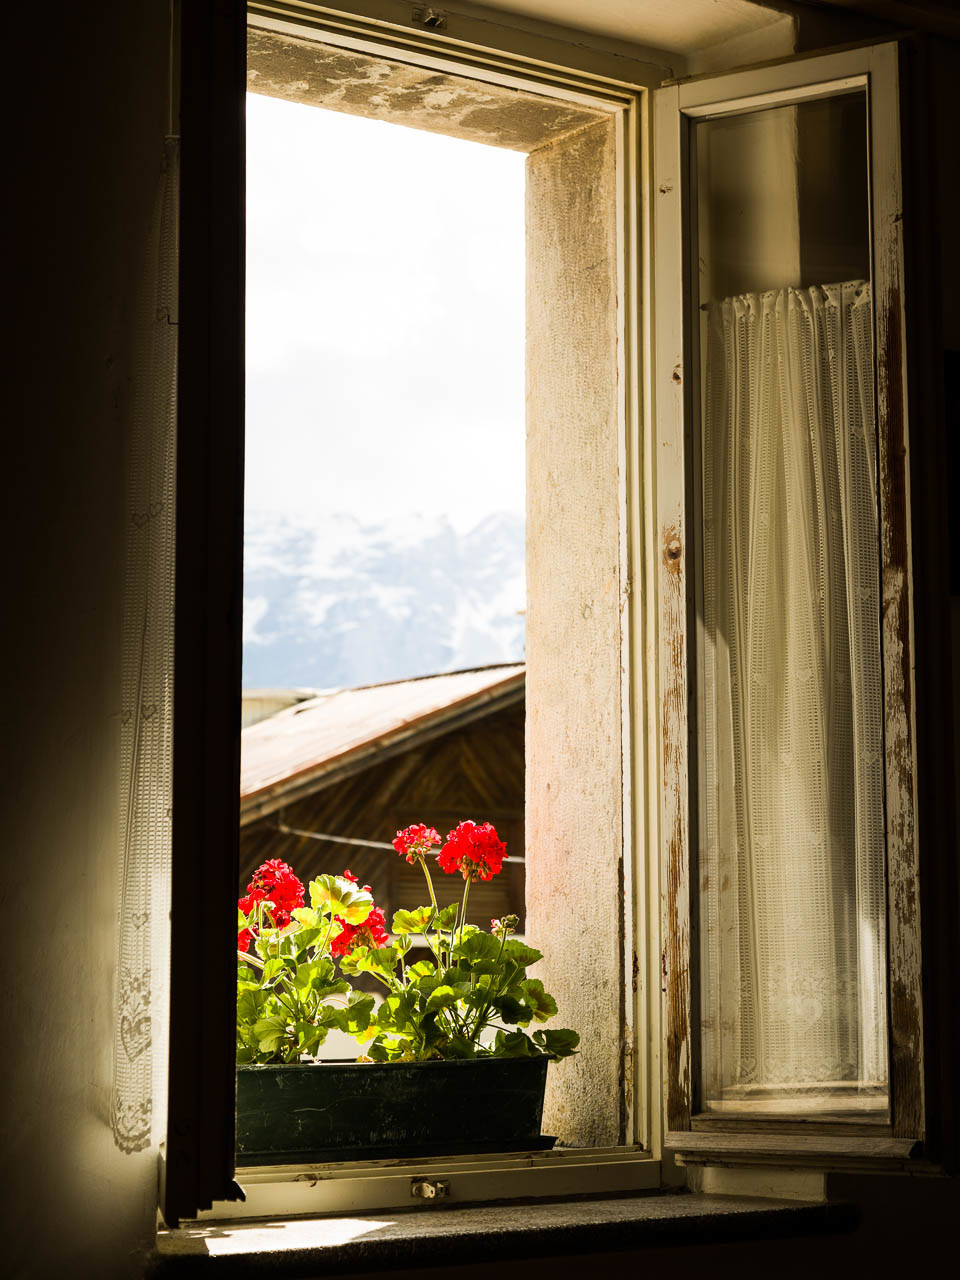 Mark-Blower-130604-Venice-Dolomites-0381